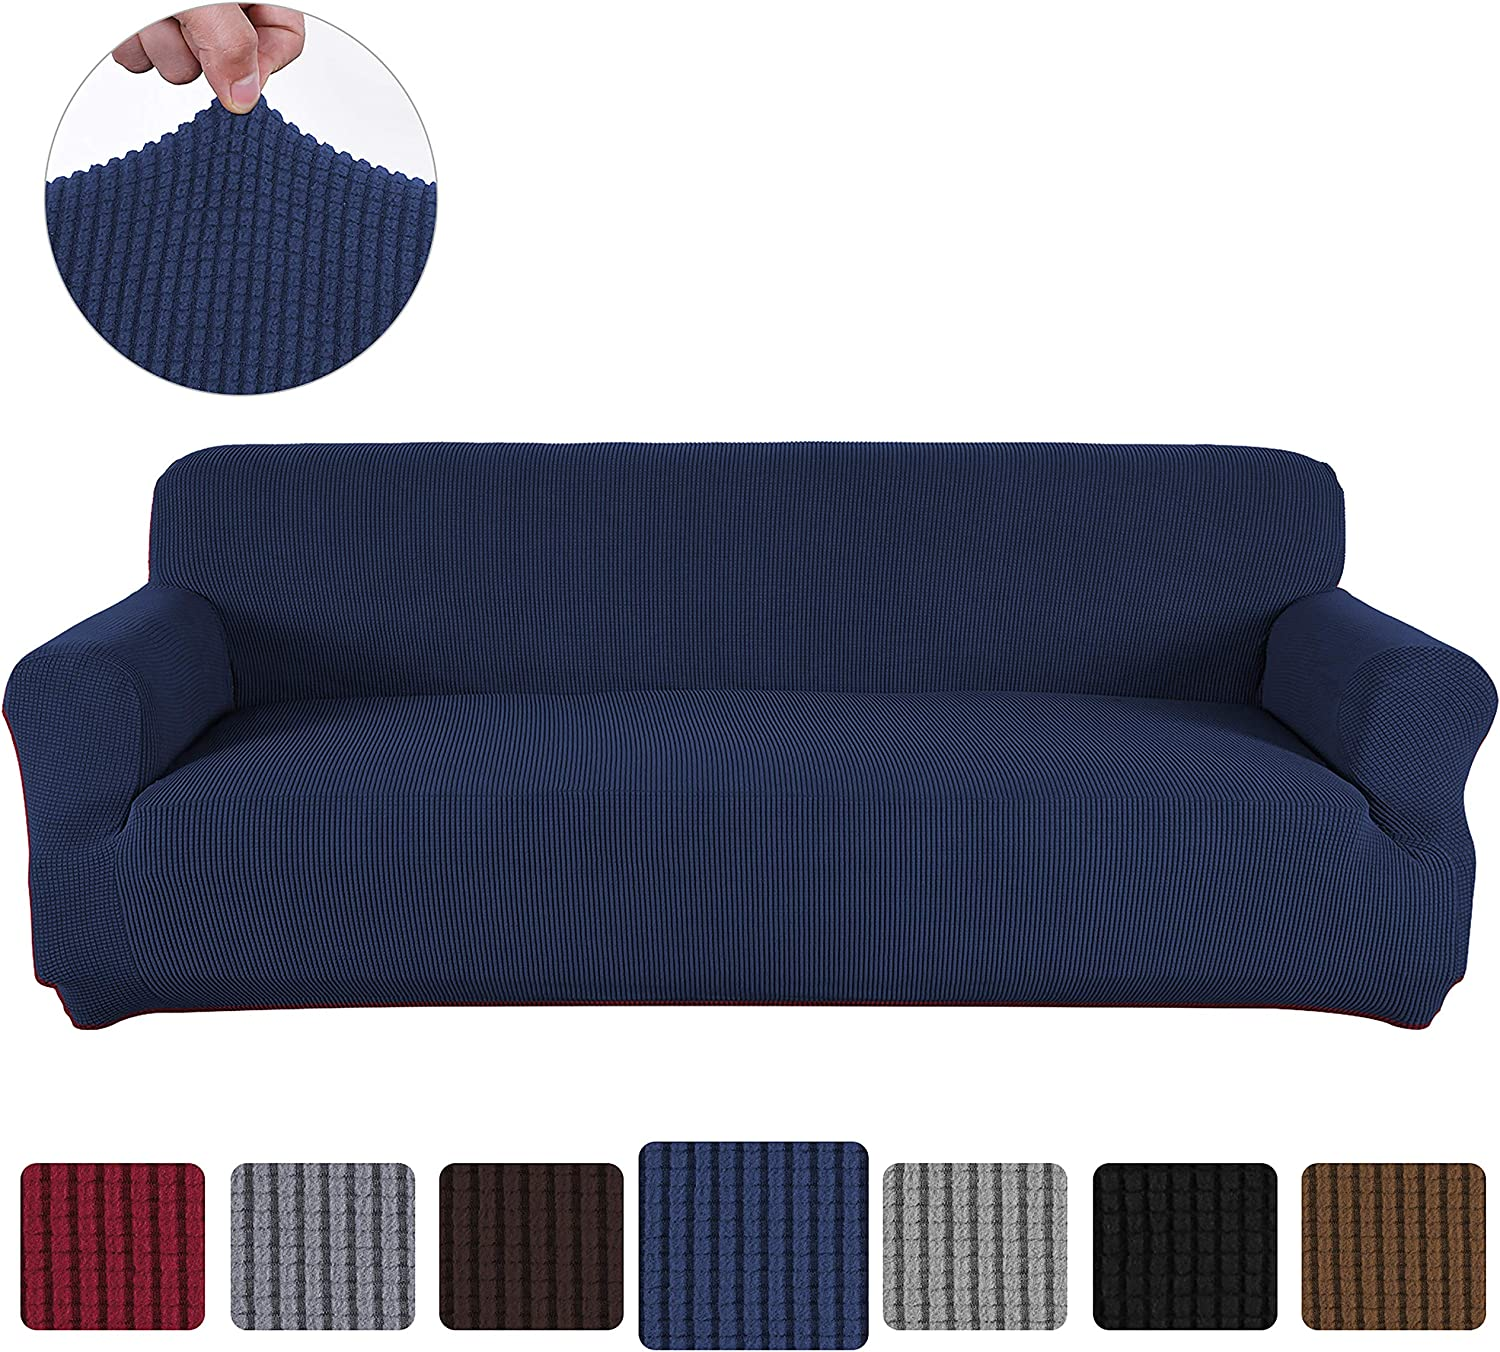 Obstal Stretch Spandex Oversized Sofa Cover, 4 Seat Couch Covers for Living Room, Anti-Slip Sofa Slipcover with Elastic Bottom, Sofa Couch Coverings Furniture Protector for Dogs, Cats, Pets, and Kids